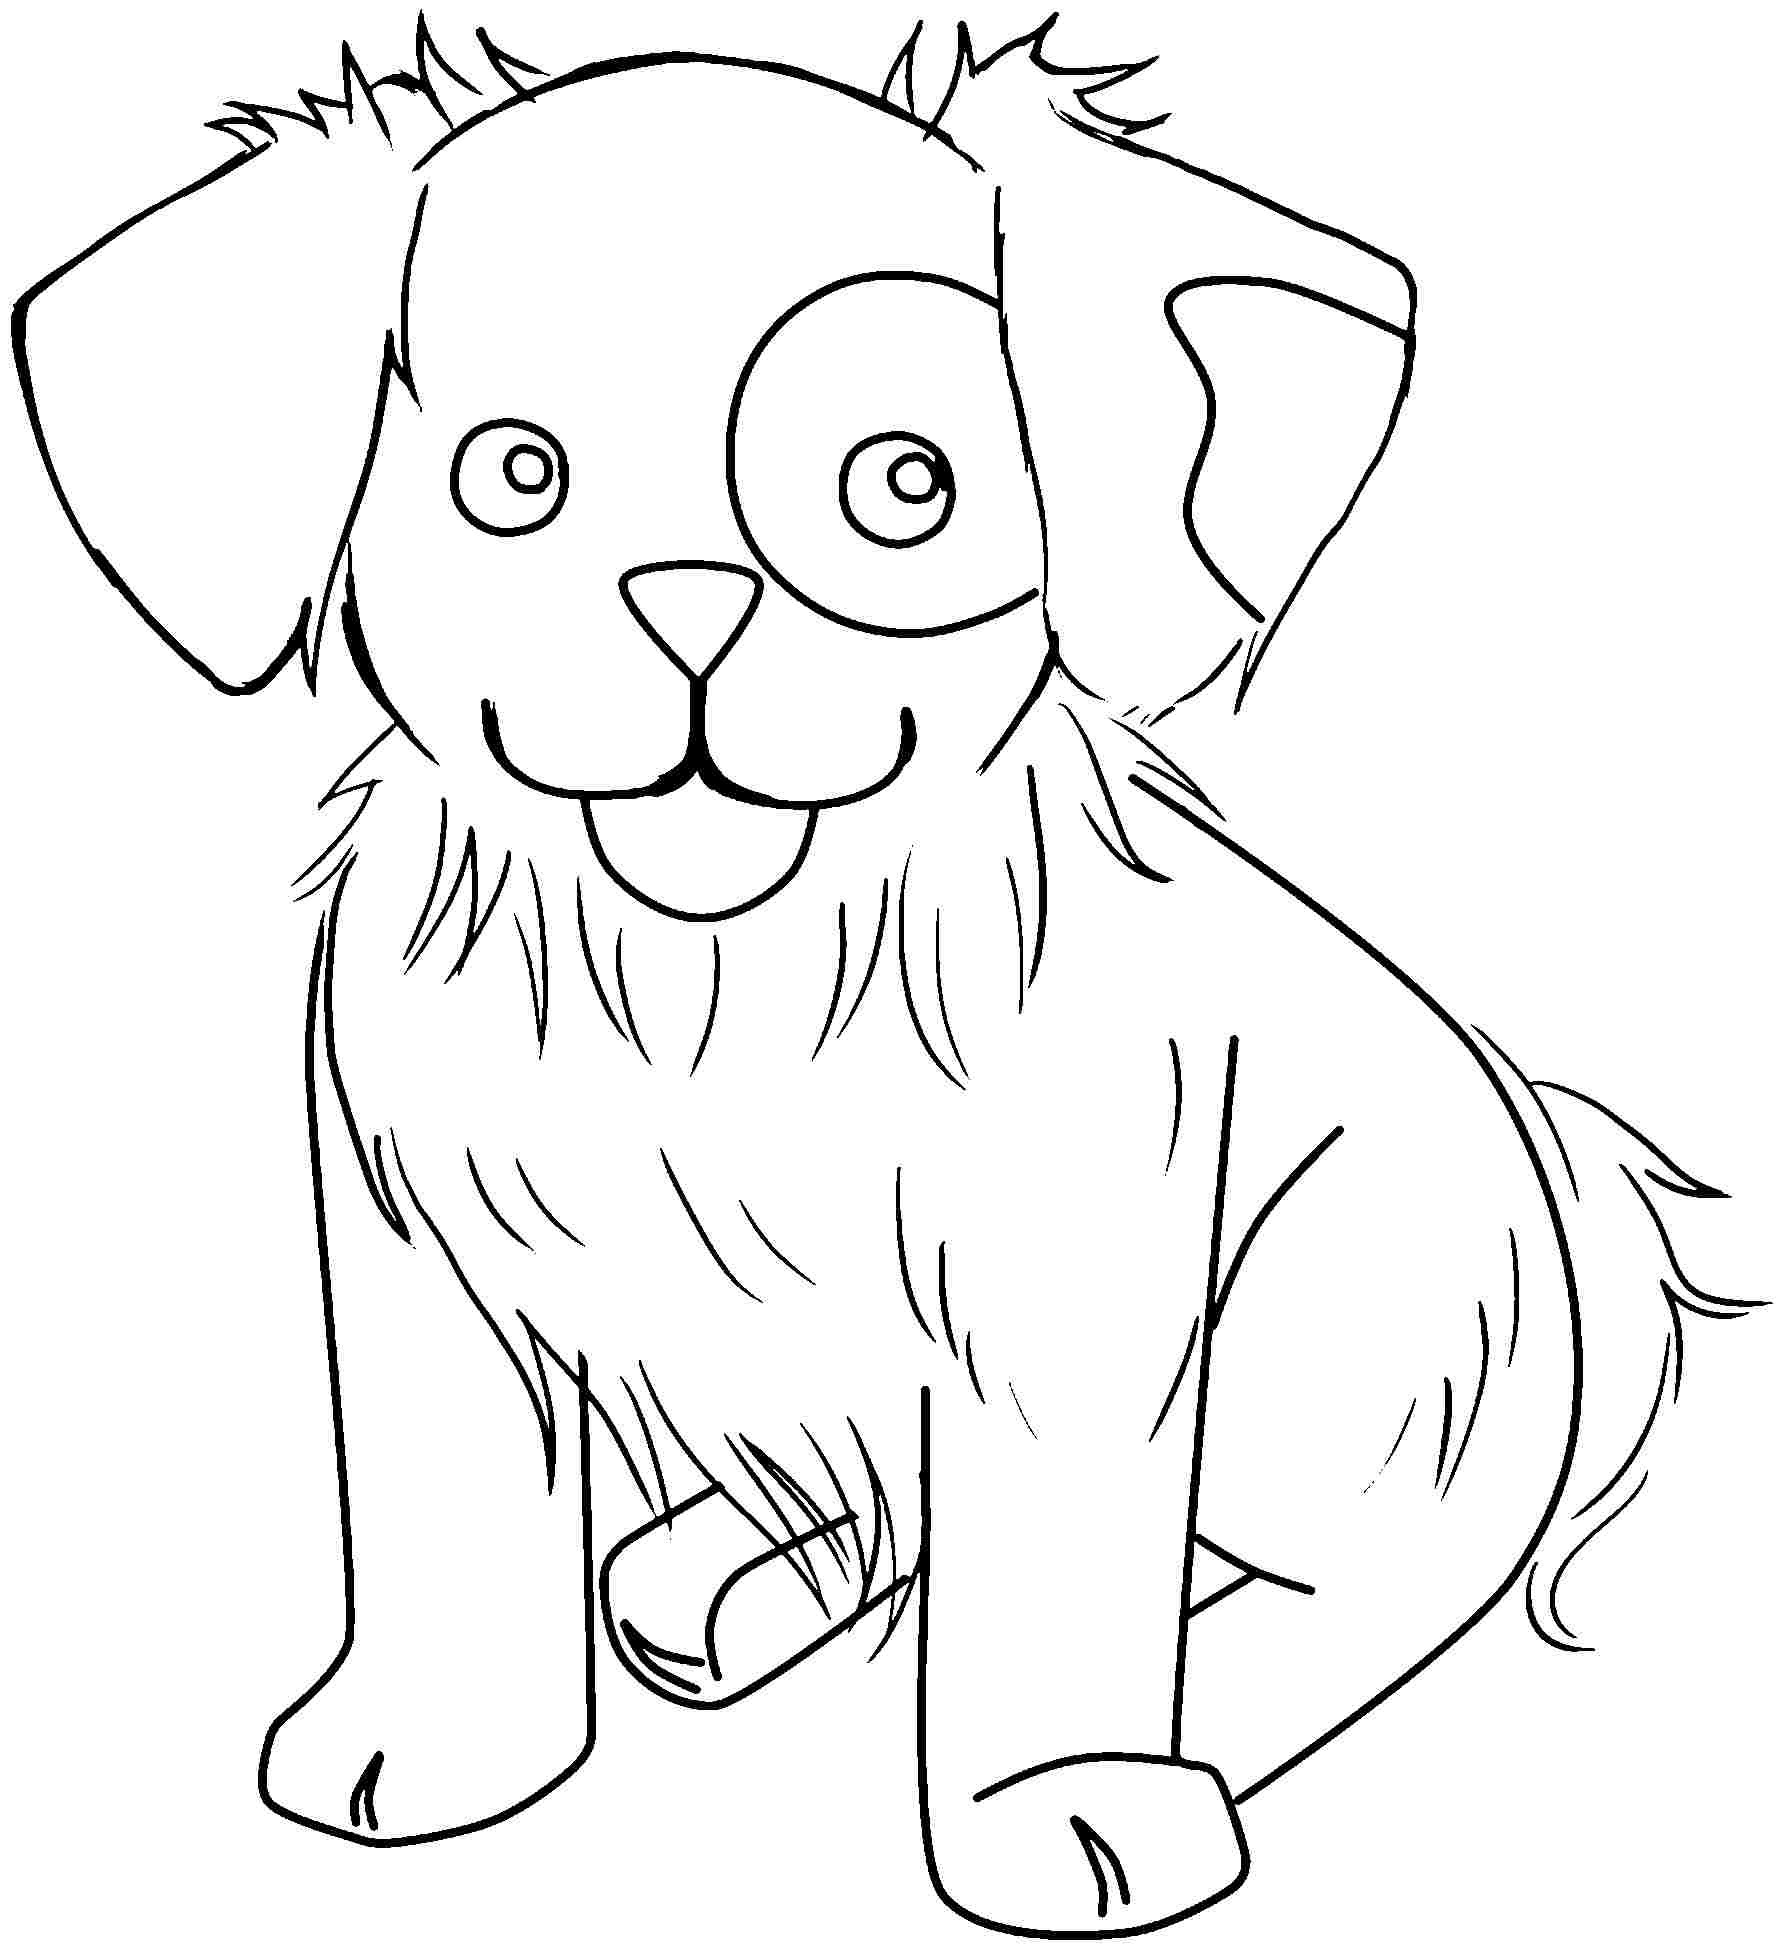 Best ideas about Free Coloring Pages Animals To Print . Save or Pin Free Printable Cute Animal Coloring Pages Coloring Home Now.